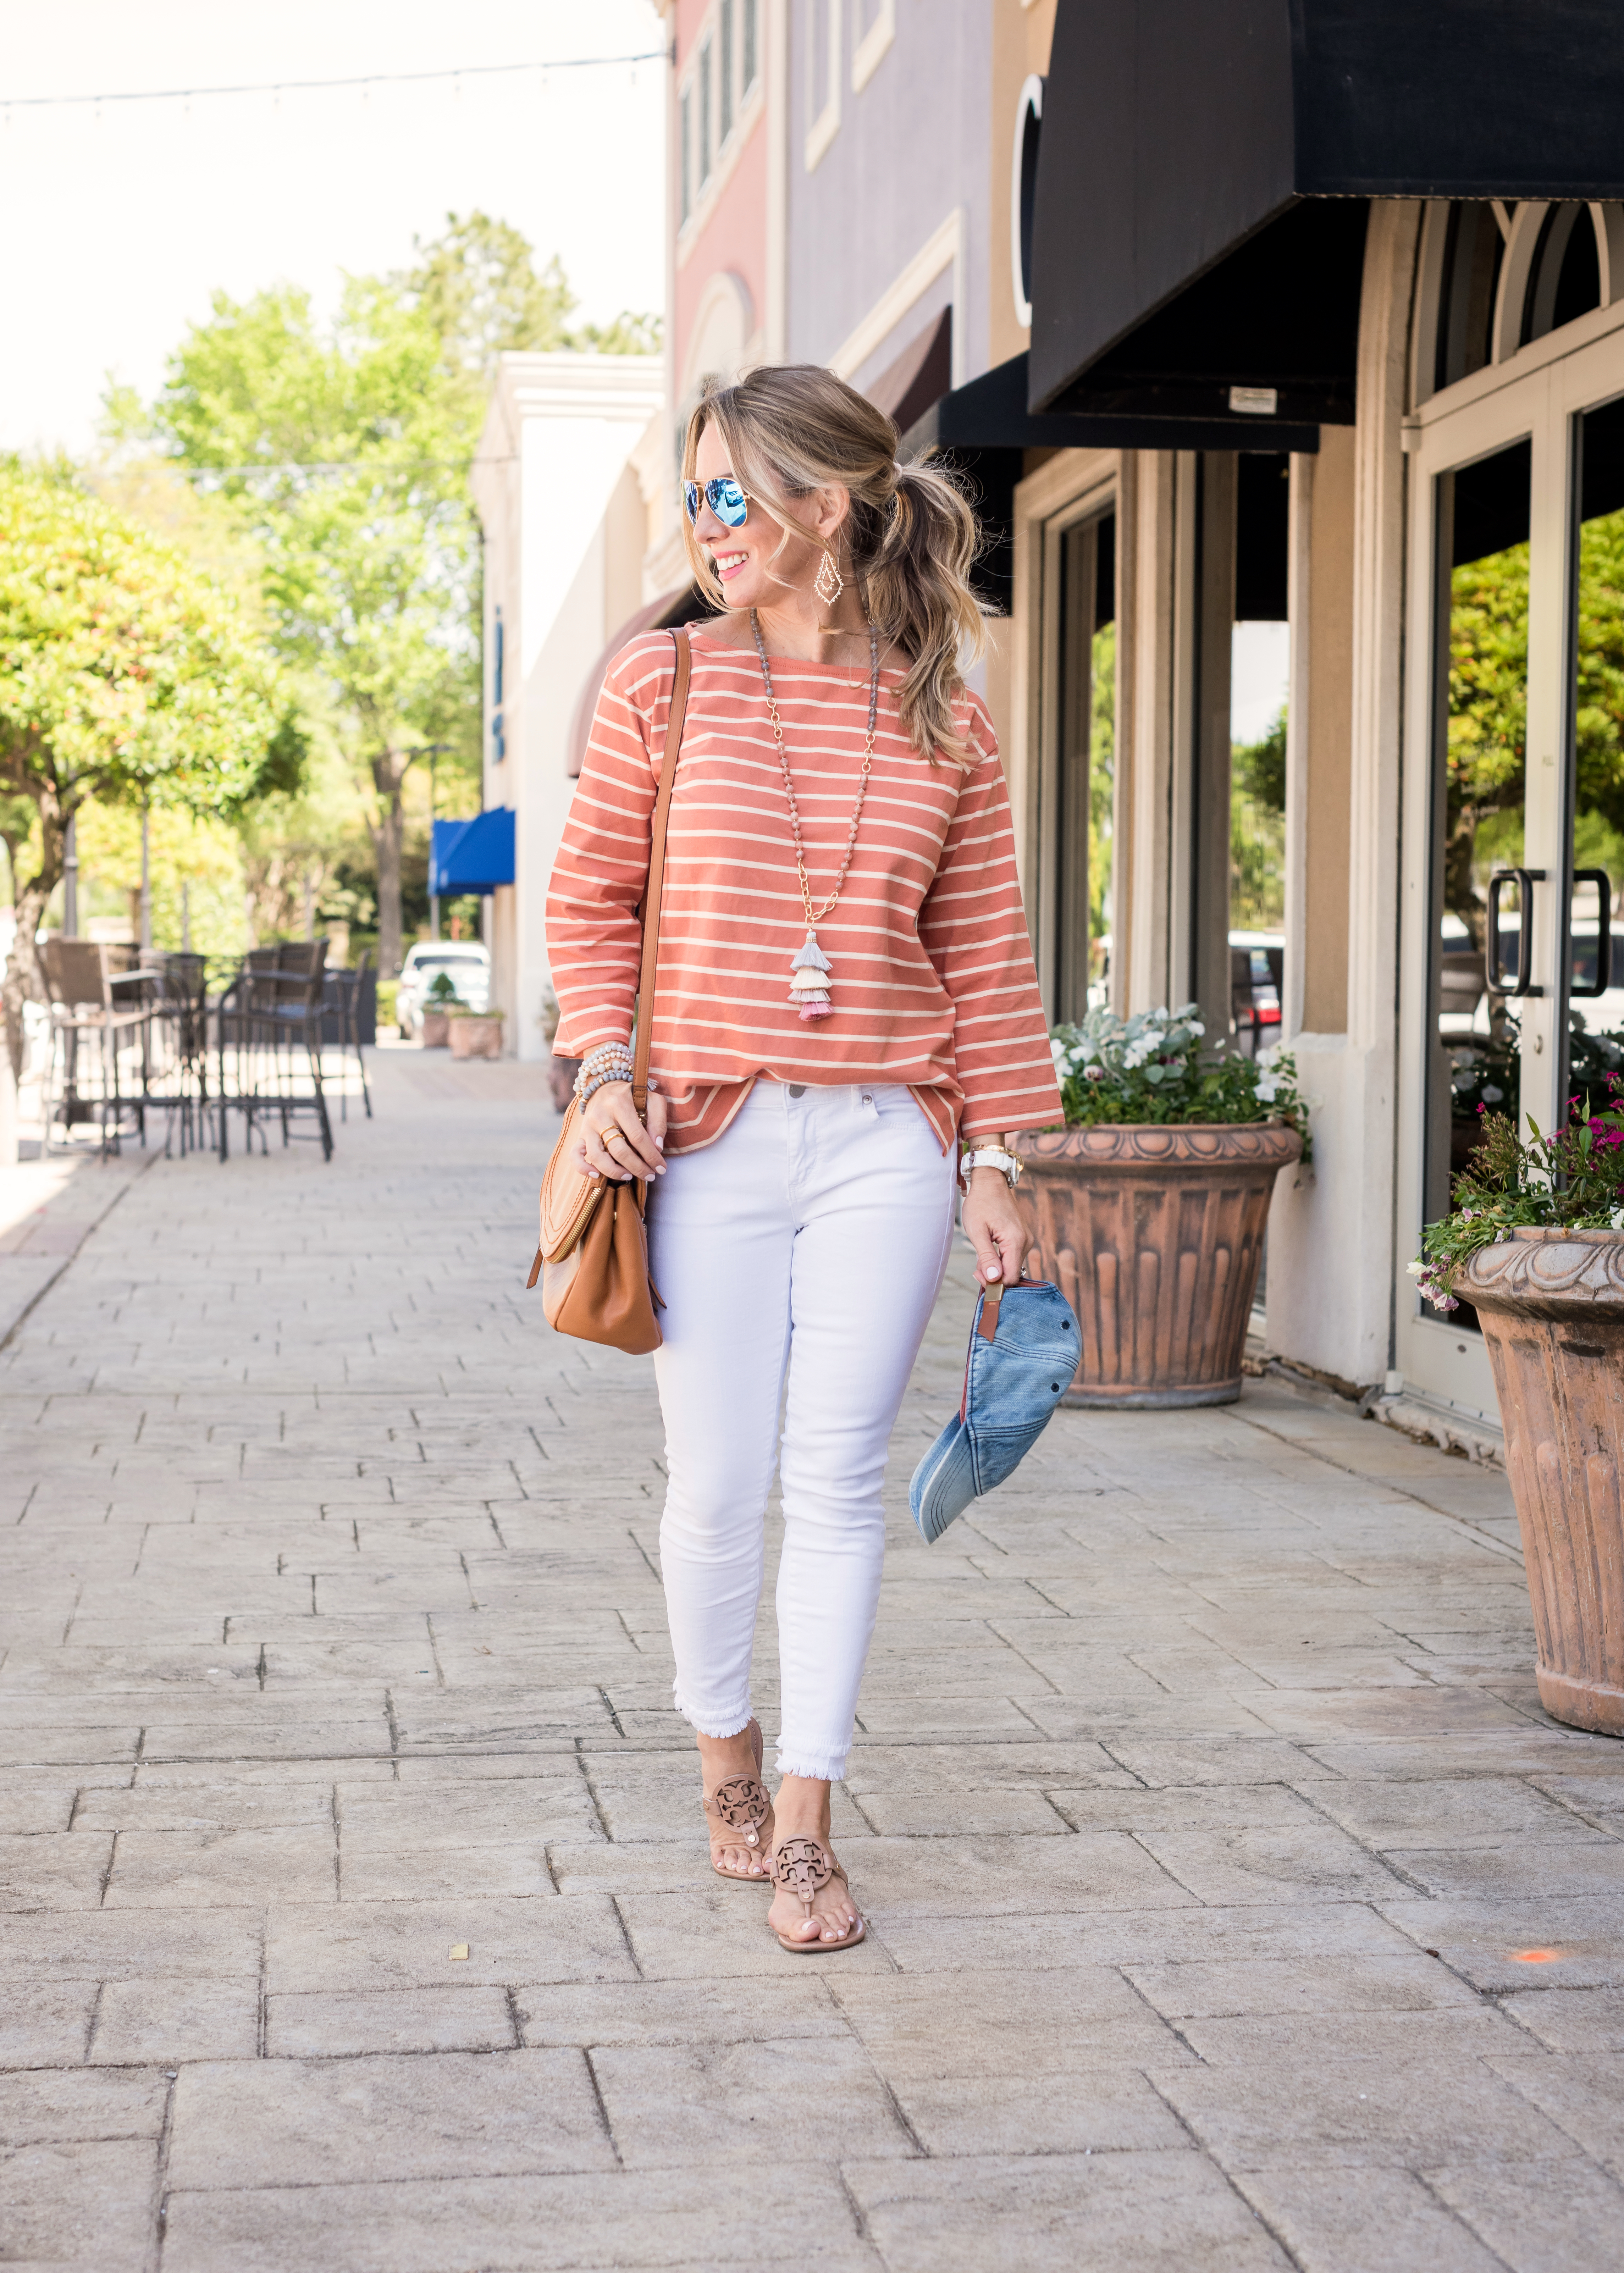 f85e7cf41 Weekend Outfit with white jeans and striped top 3 ...